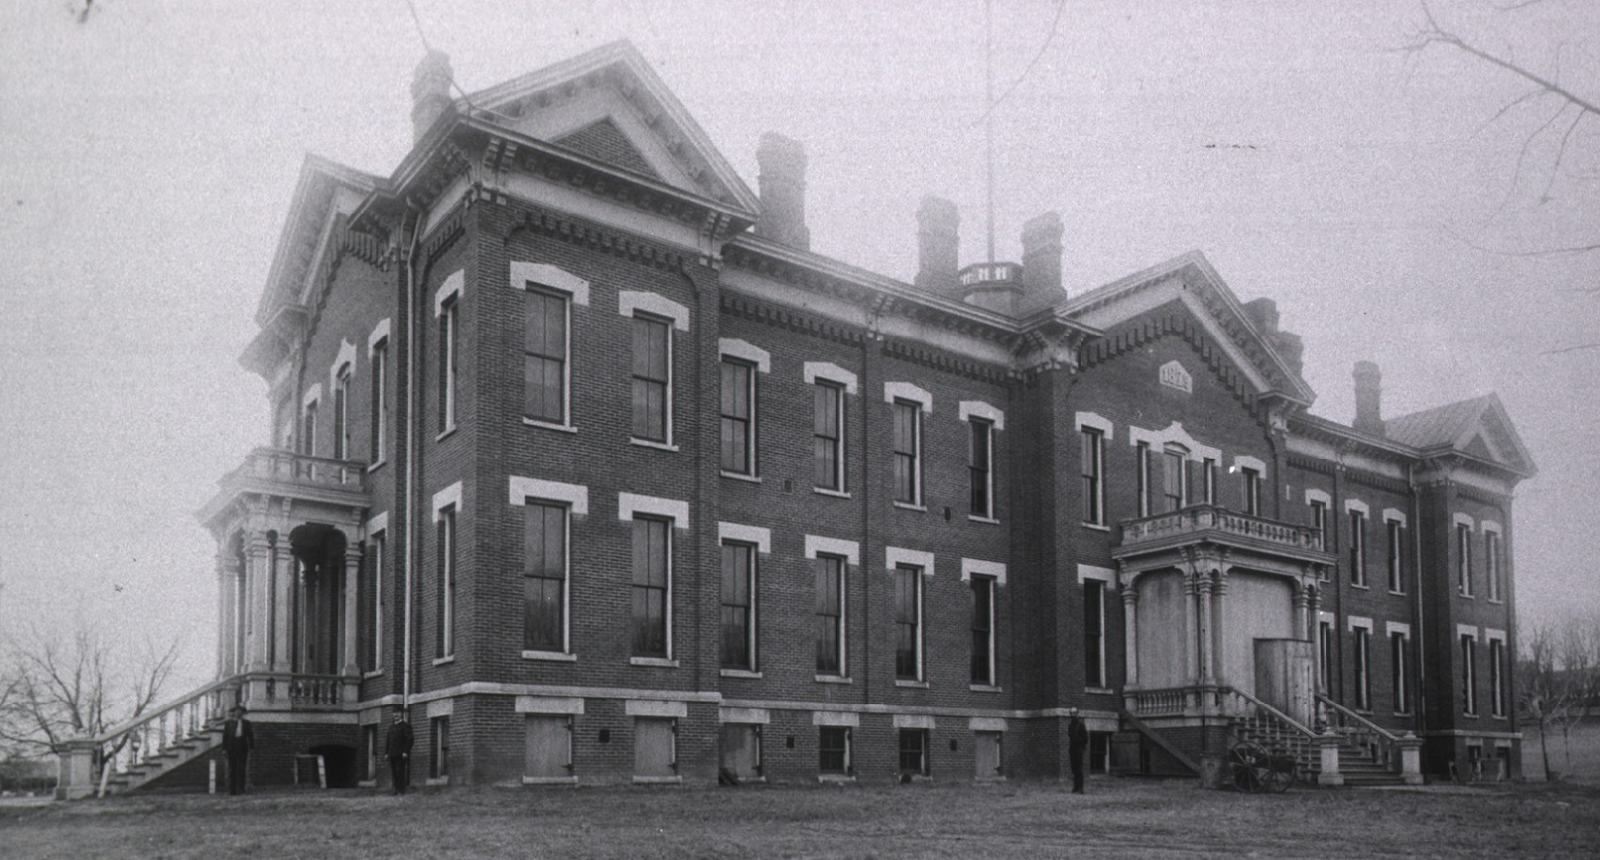 Fort Omaha Hospital (1879-1898), Nebraska